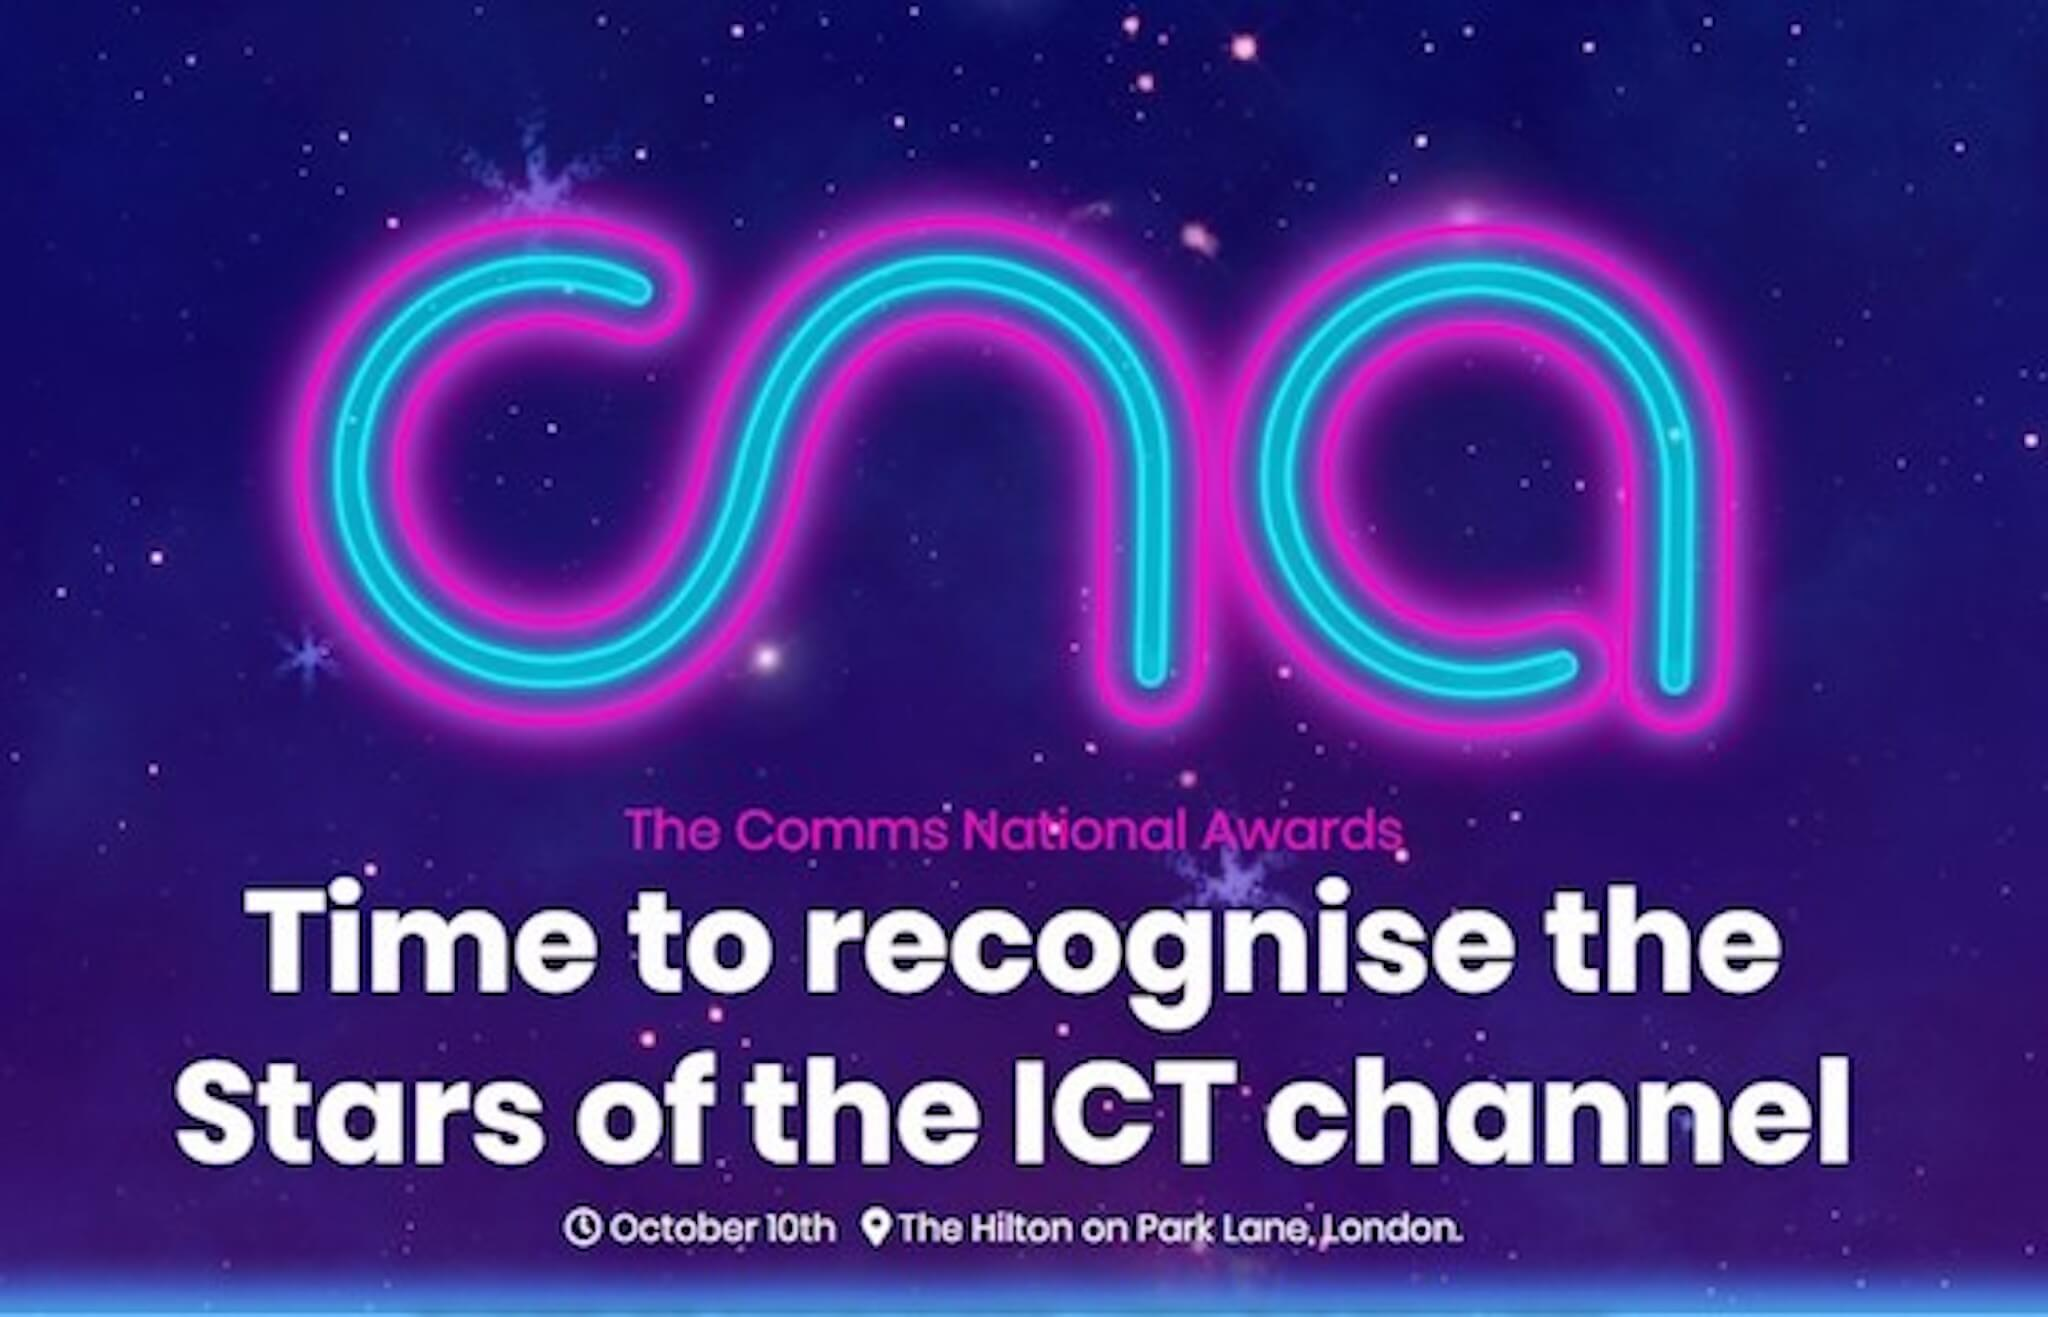 Ipcortex Is Delighted To Be Finalists In The Comms National Awards